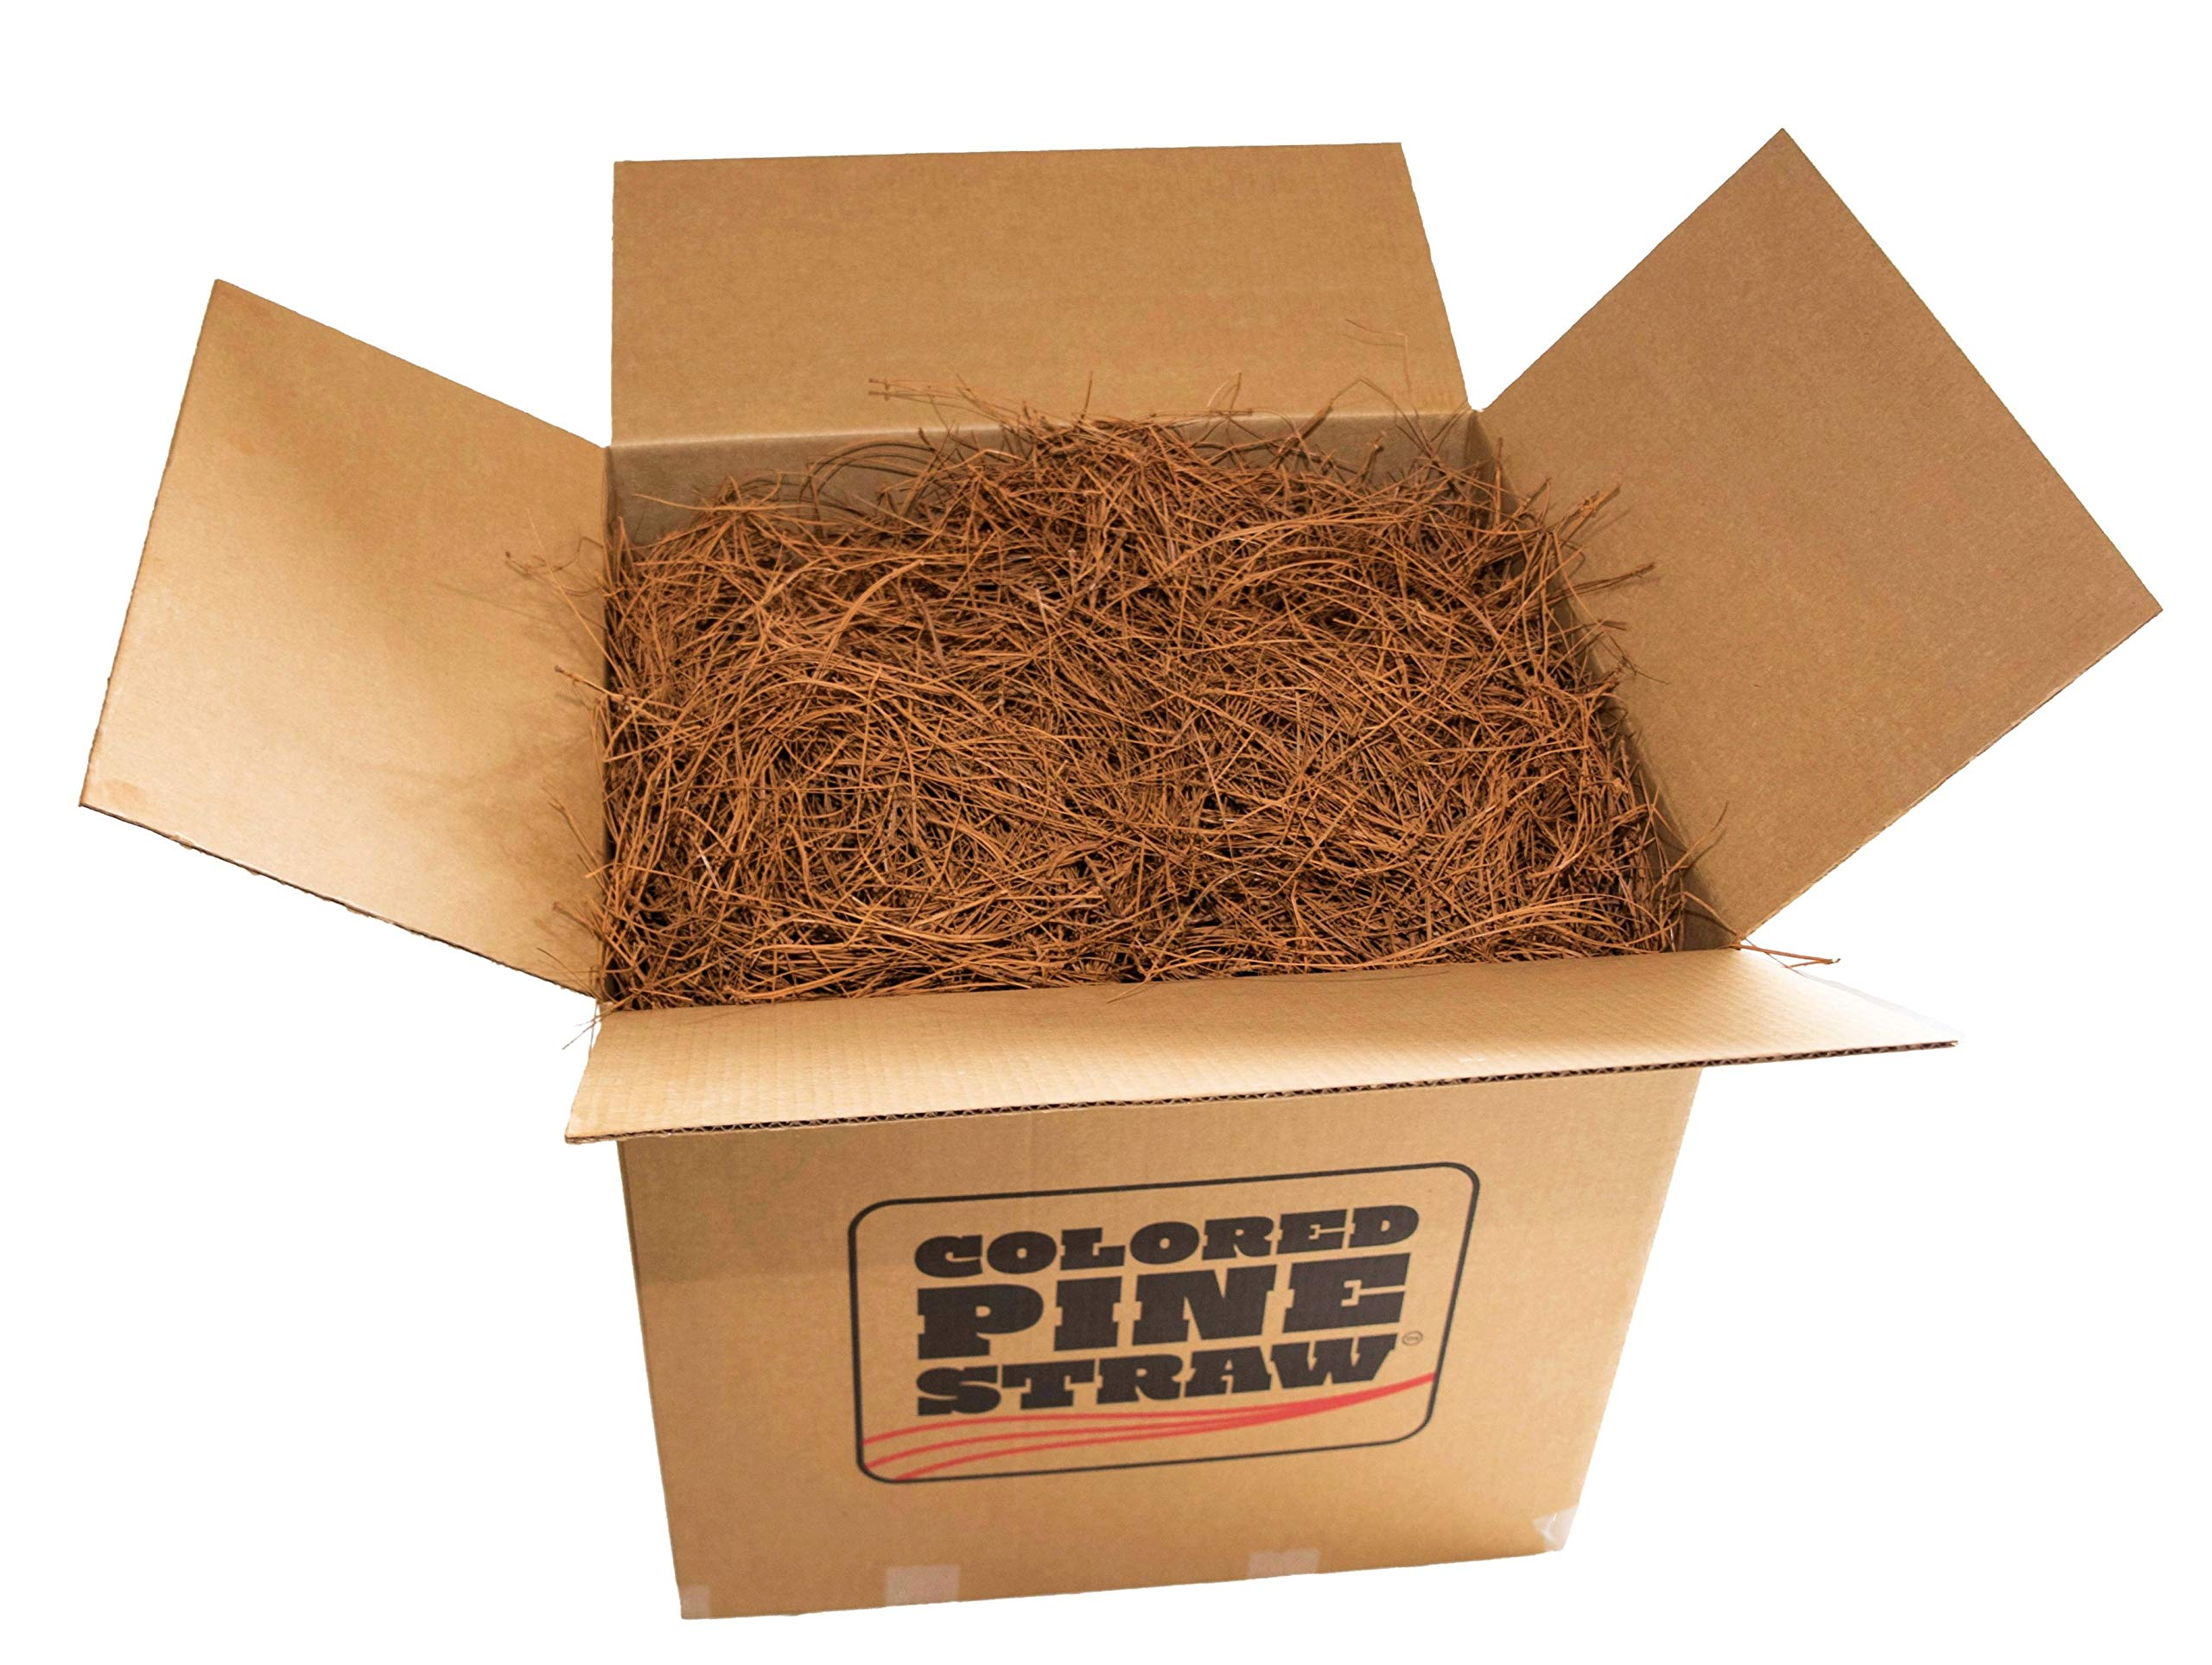 Brown Colored Longleaf Pine Straw - Loose in Box - 90-100 Sq. Ft. - Premium Pine Needle Mulch by Colored Pine Straw